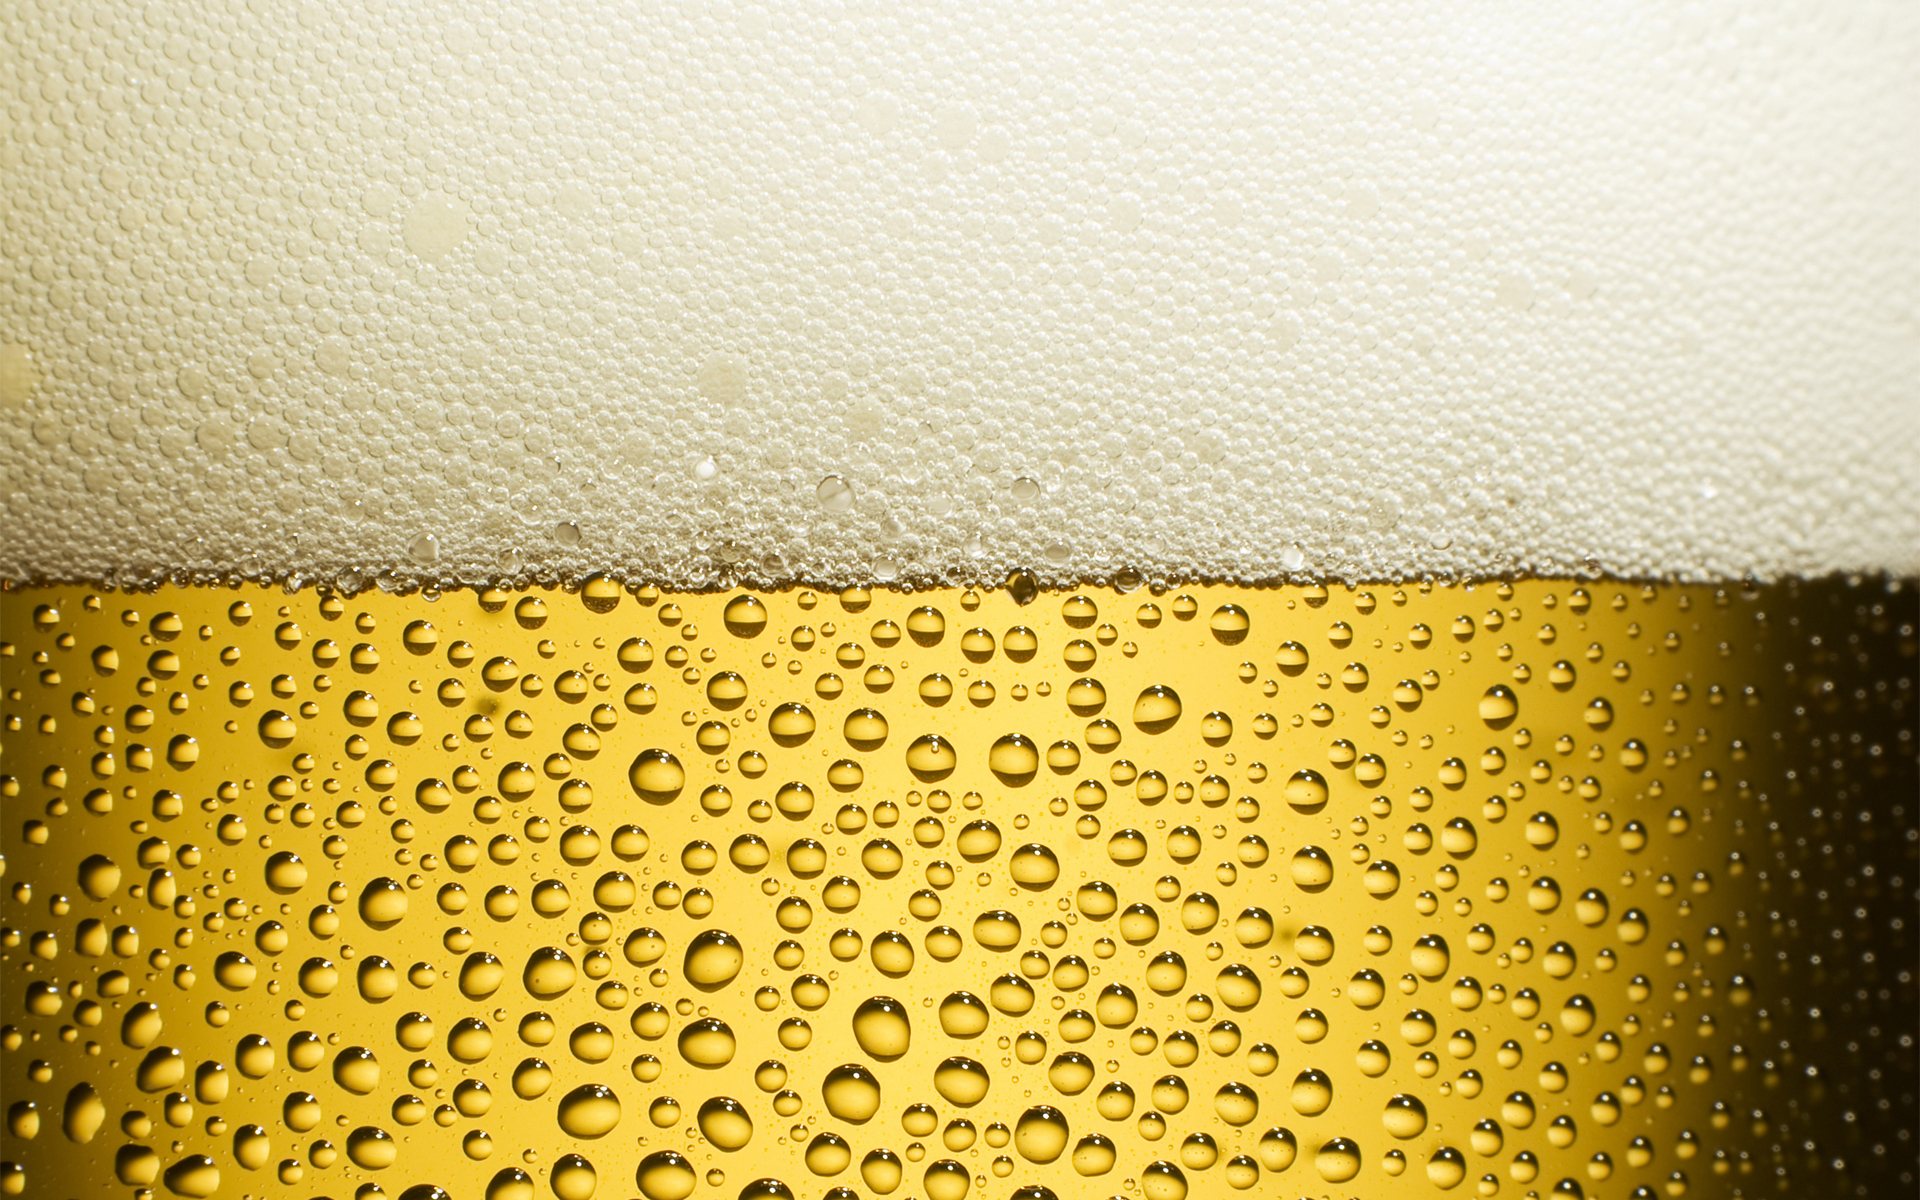 пена, пиво, текстура, фон, фото, beer background texture